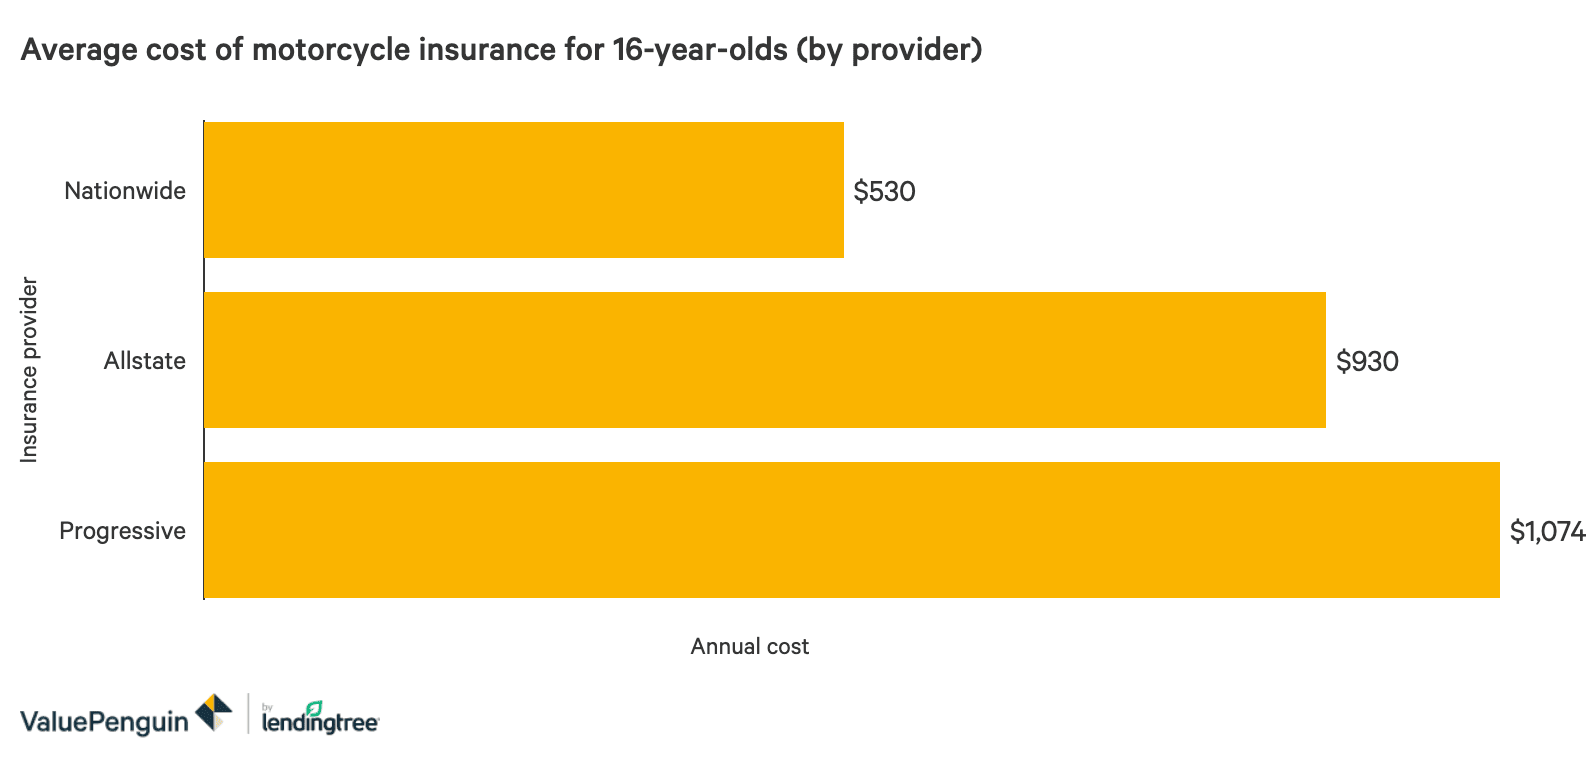 What Is The Average Motorcycle Insurance Price For A 16 Year Old